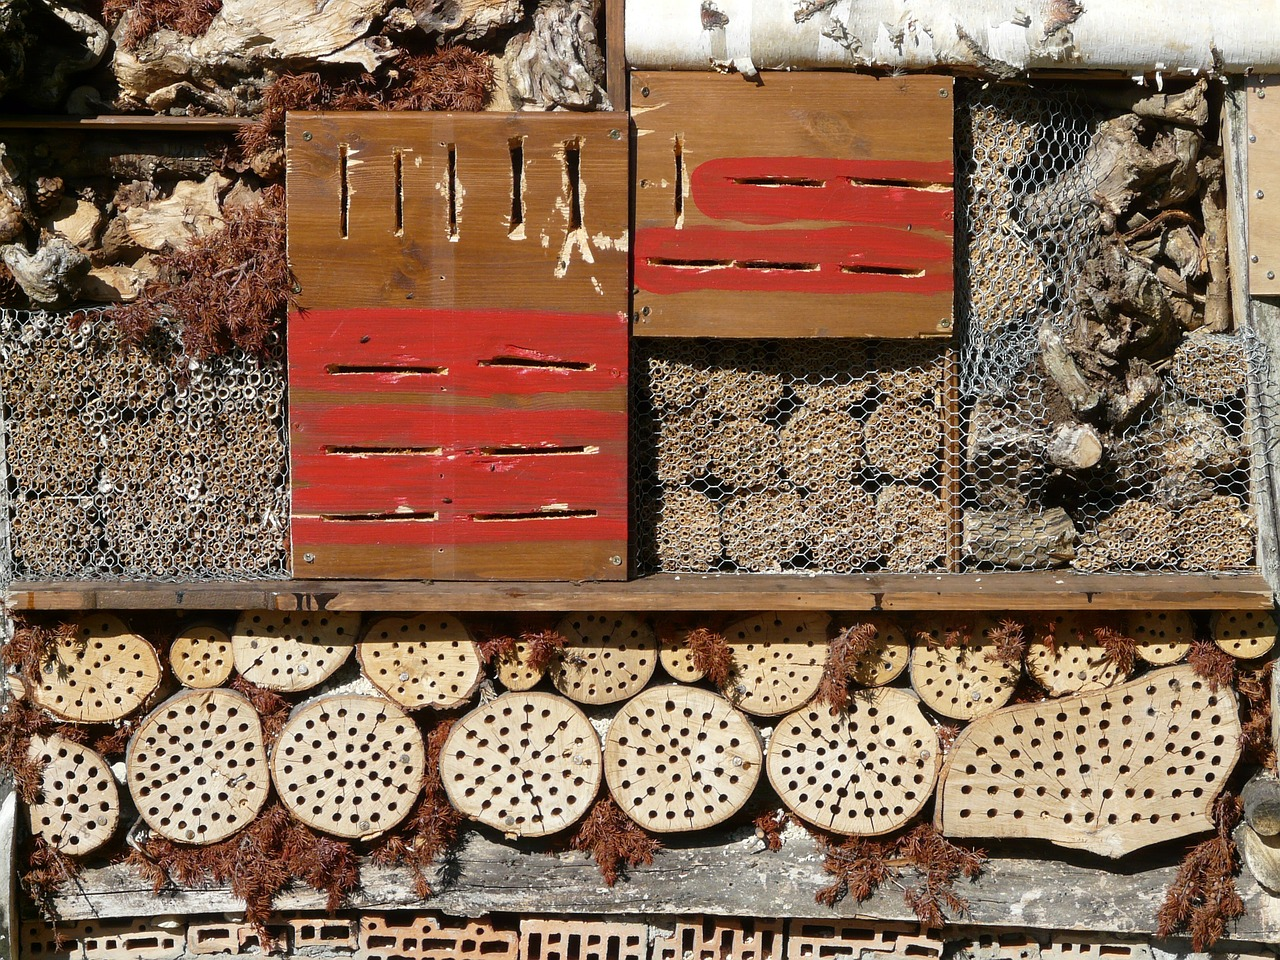 insect hotel insect house insect asylum free photo